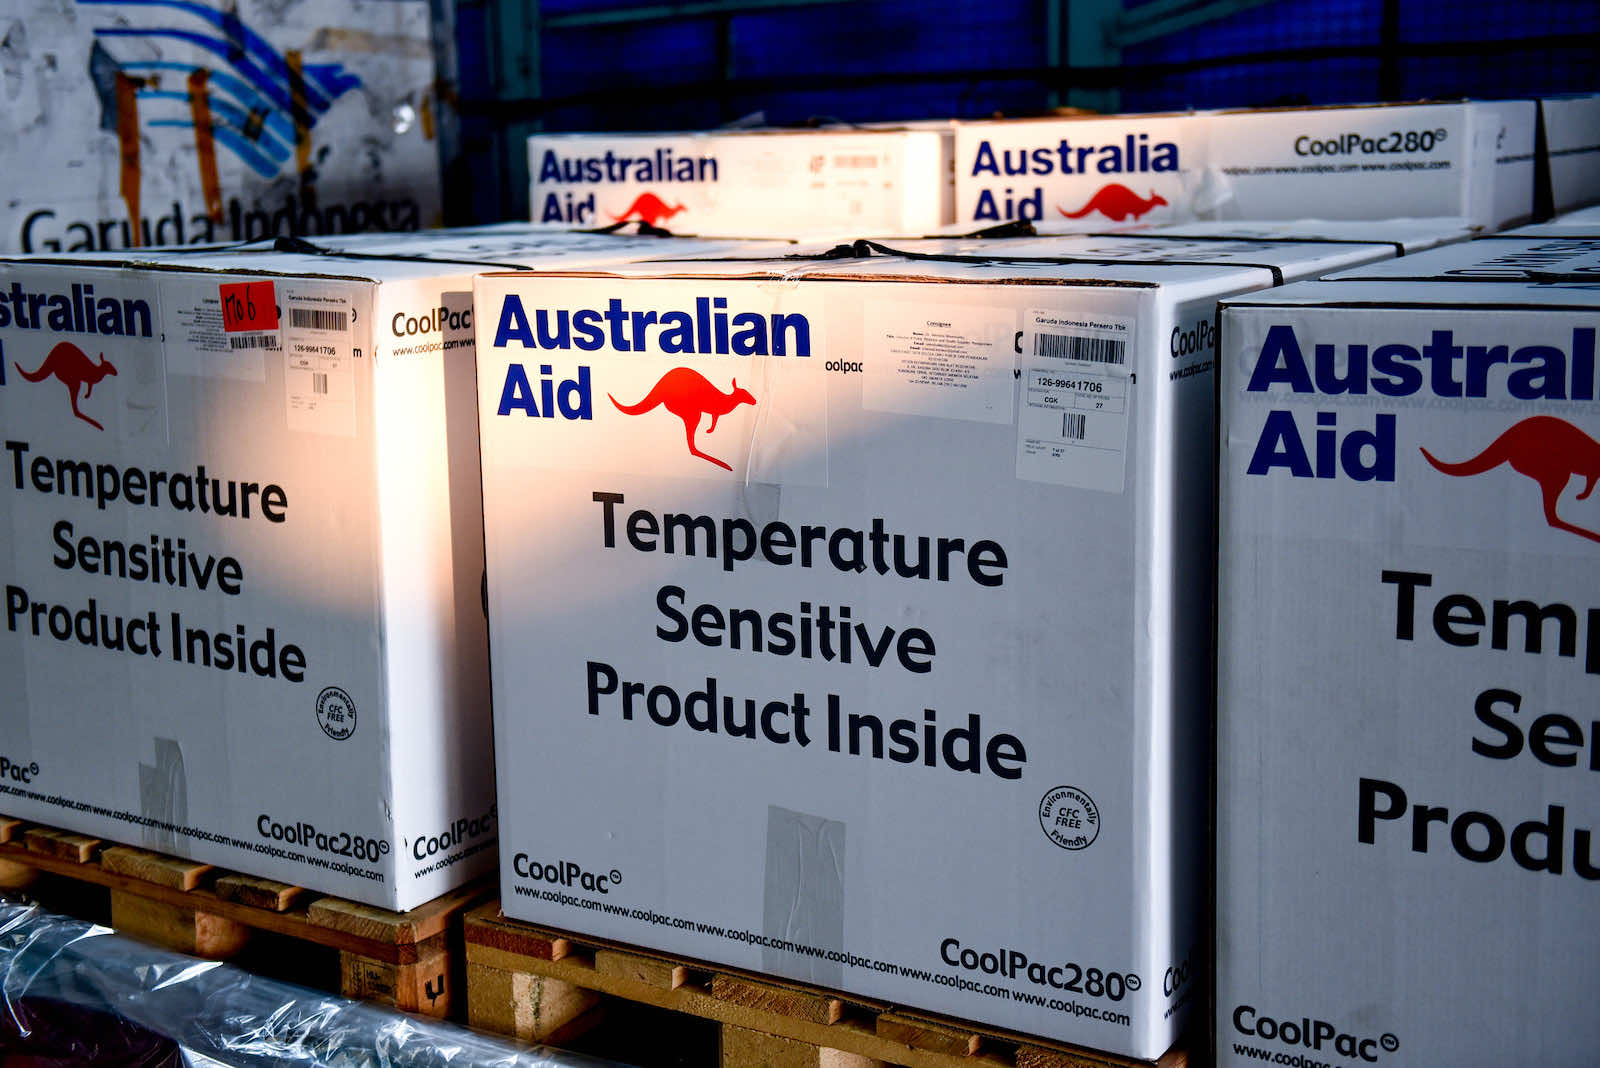 Part of a shipment of 500,000 AstraZeneca delivered by Australia to Indonesia in September (Timothy Tobing/Australian Embassy Jakarta/Flickr)